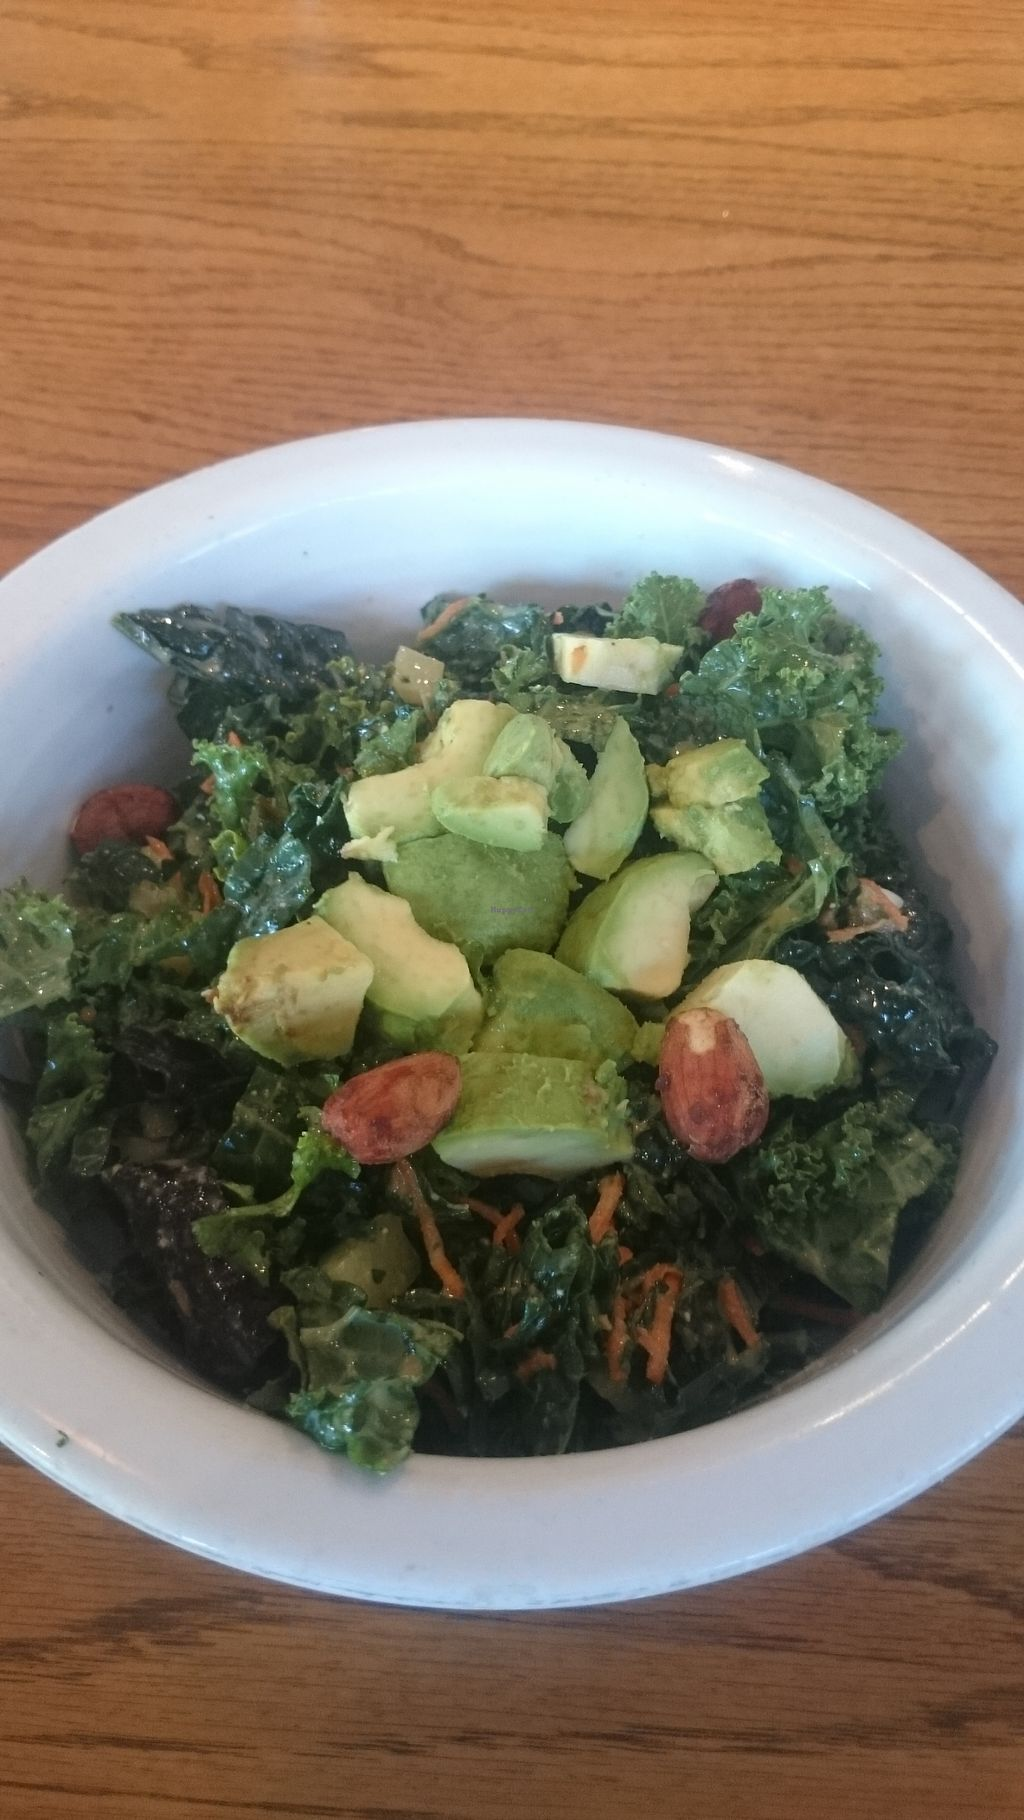 """Photo of Cafe Gratitude - Hollywood  by <a href=""""/members/profile/chb-pbfp"""">chb-pbfp</a> <br/>Kale salad <br/> October 30, 2017  - <a href='/contact/abuse/image/25808/320130'>Report</a>"""